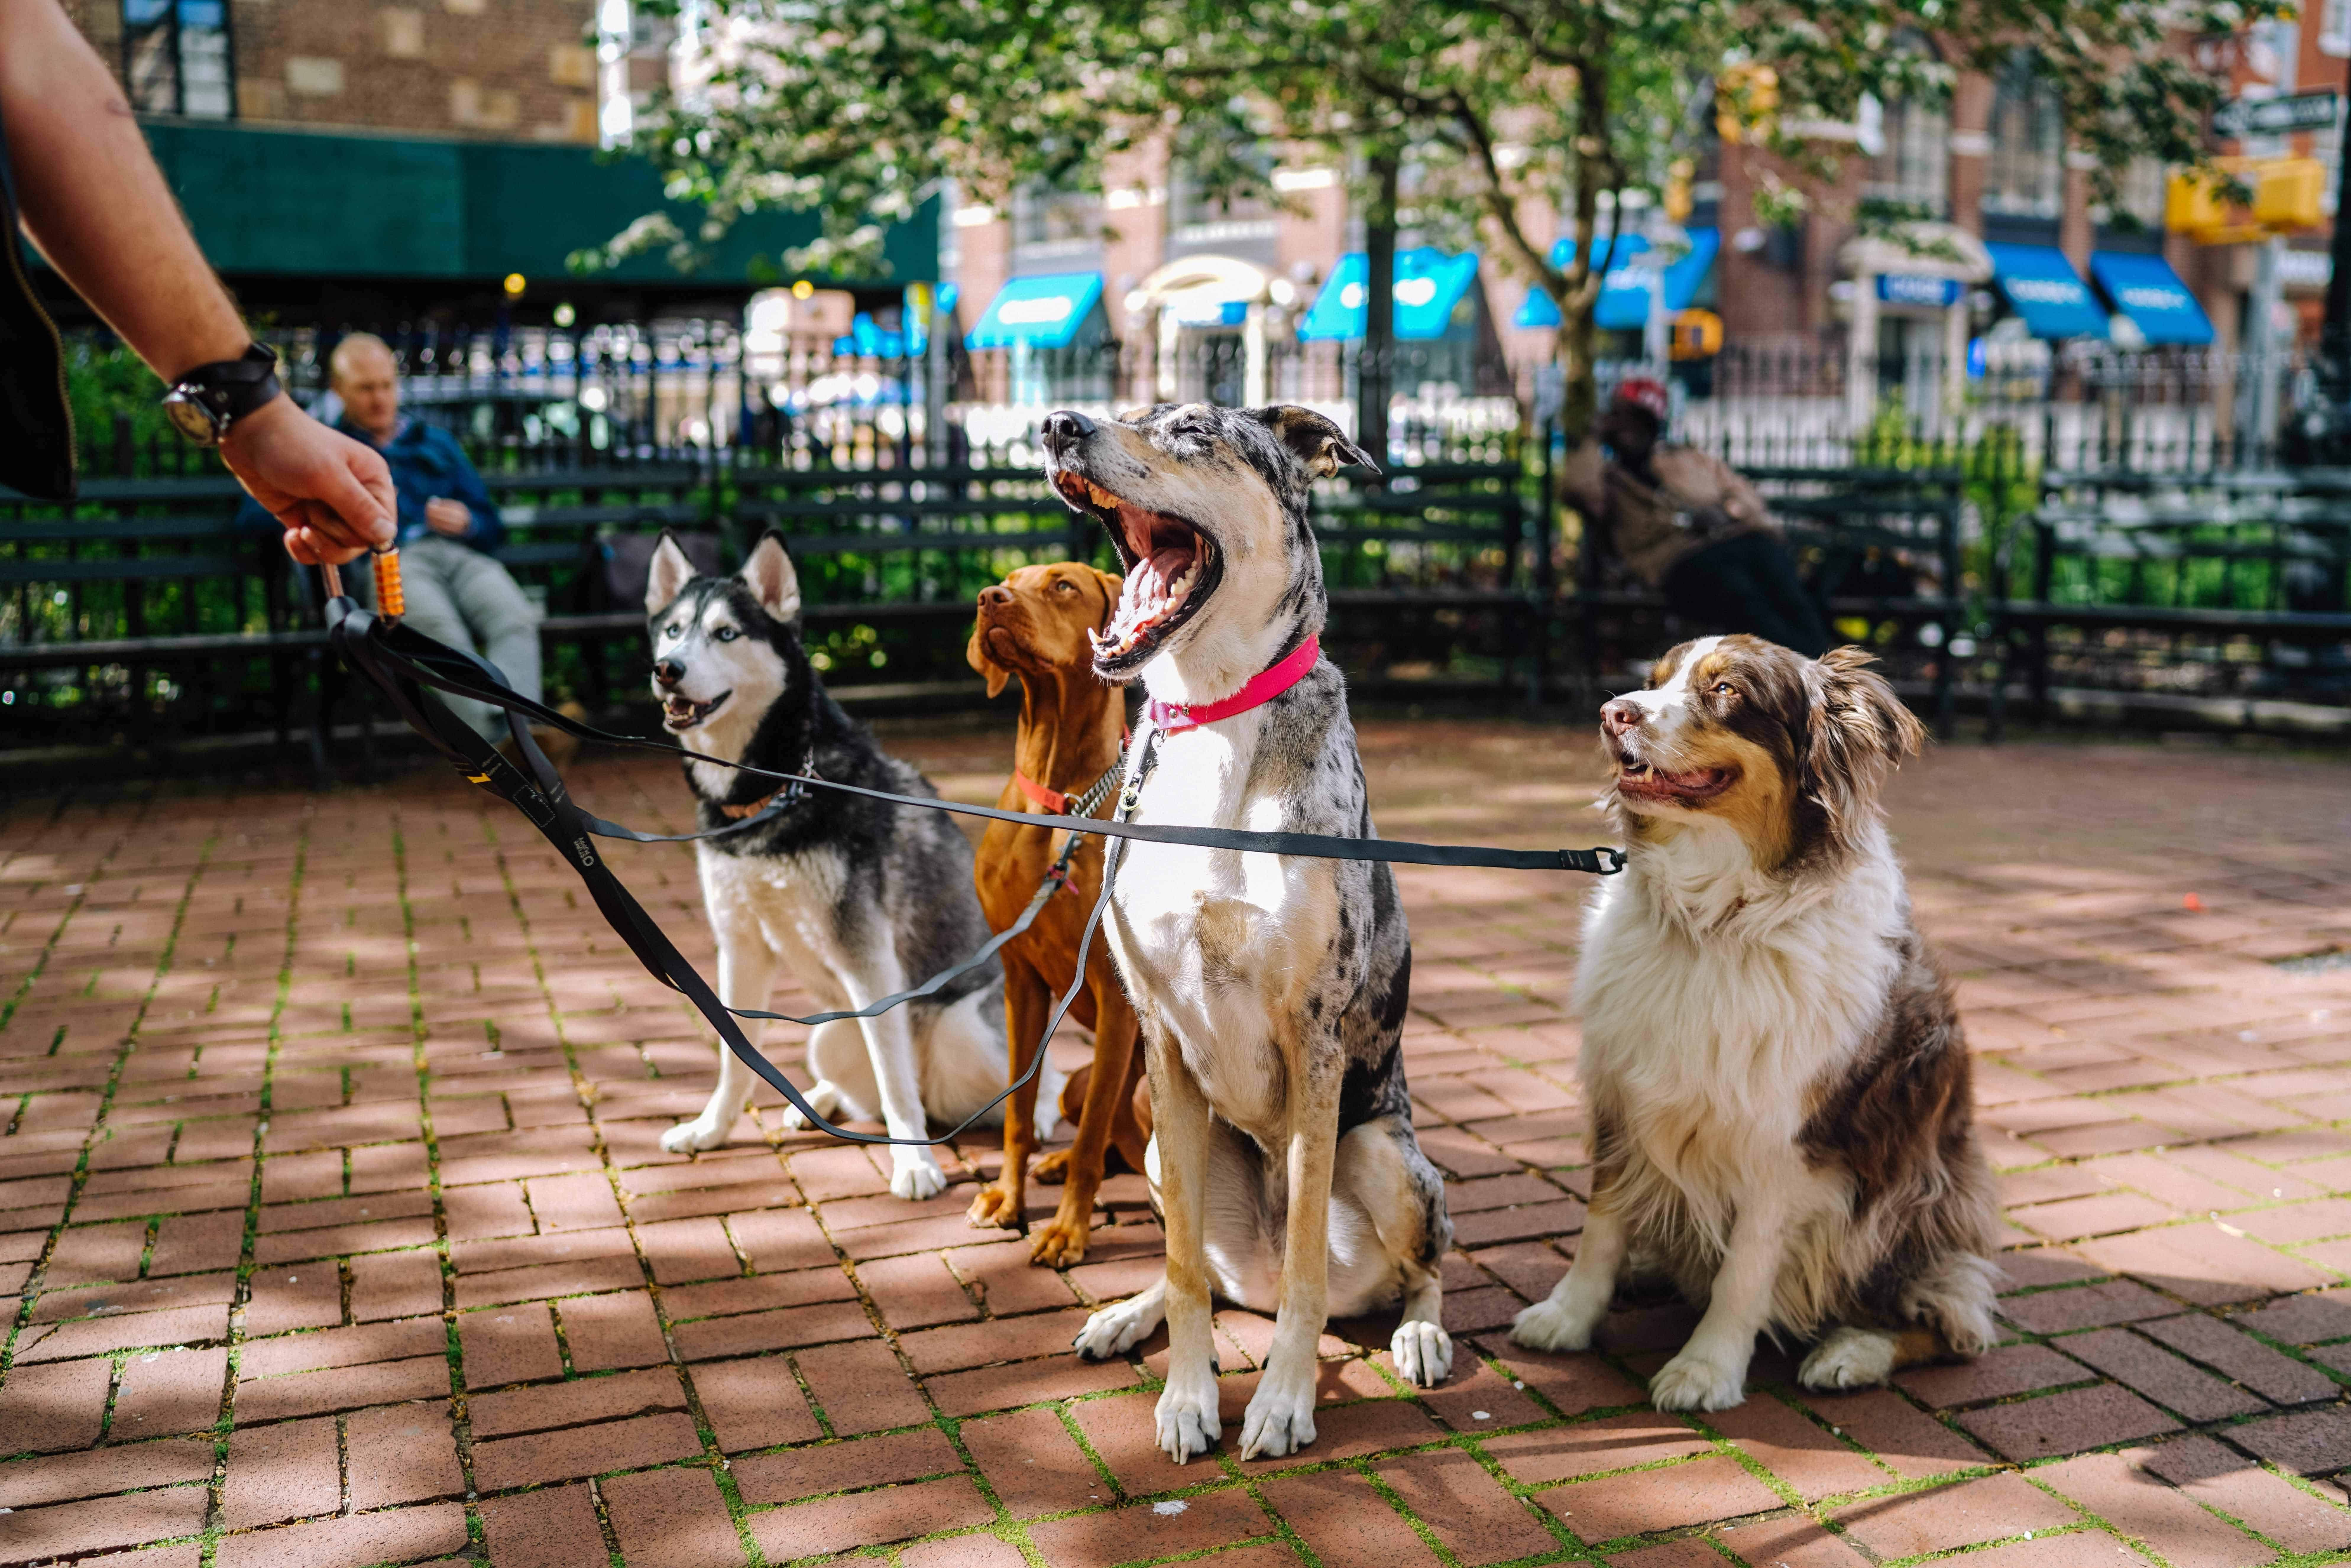 Four medium-sized dogs sitting and attached to one leash